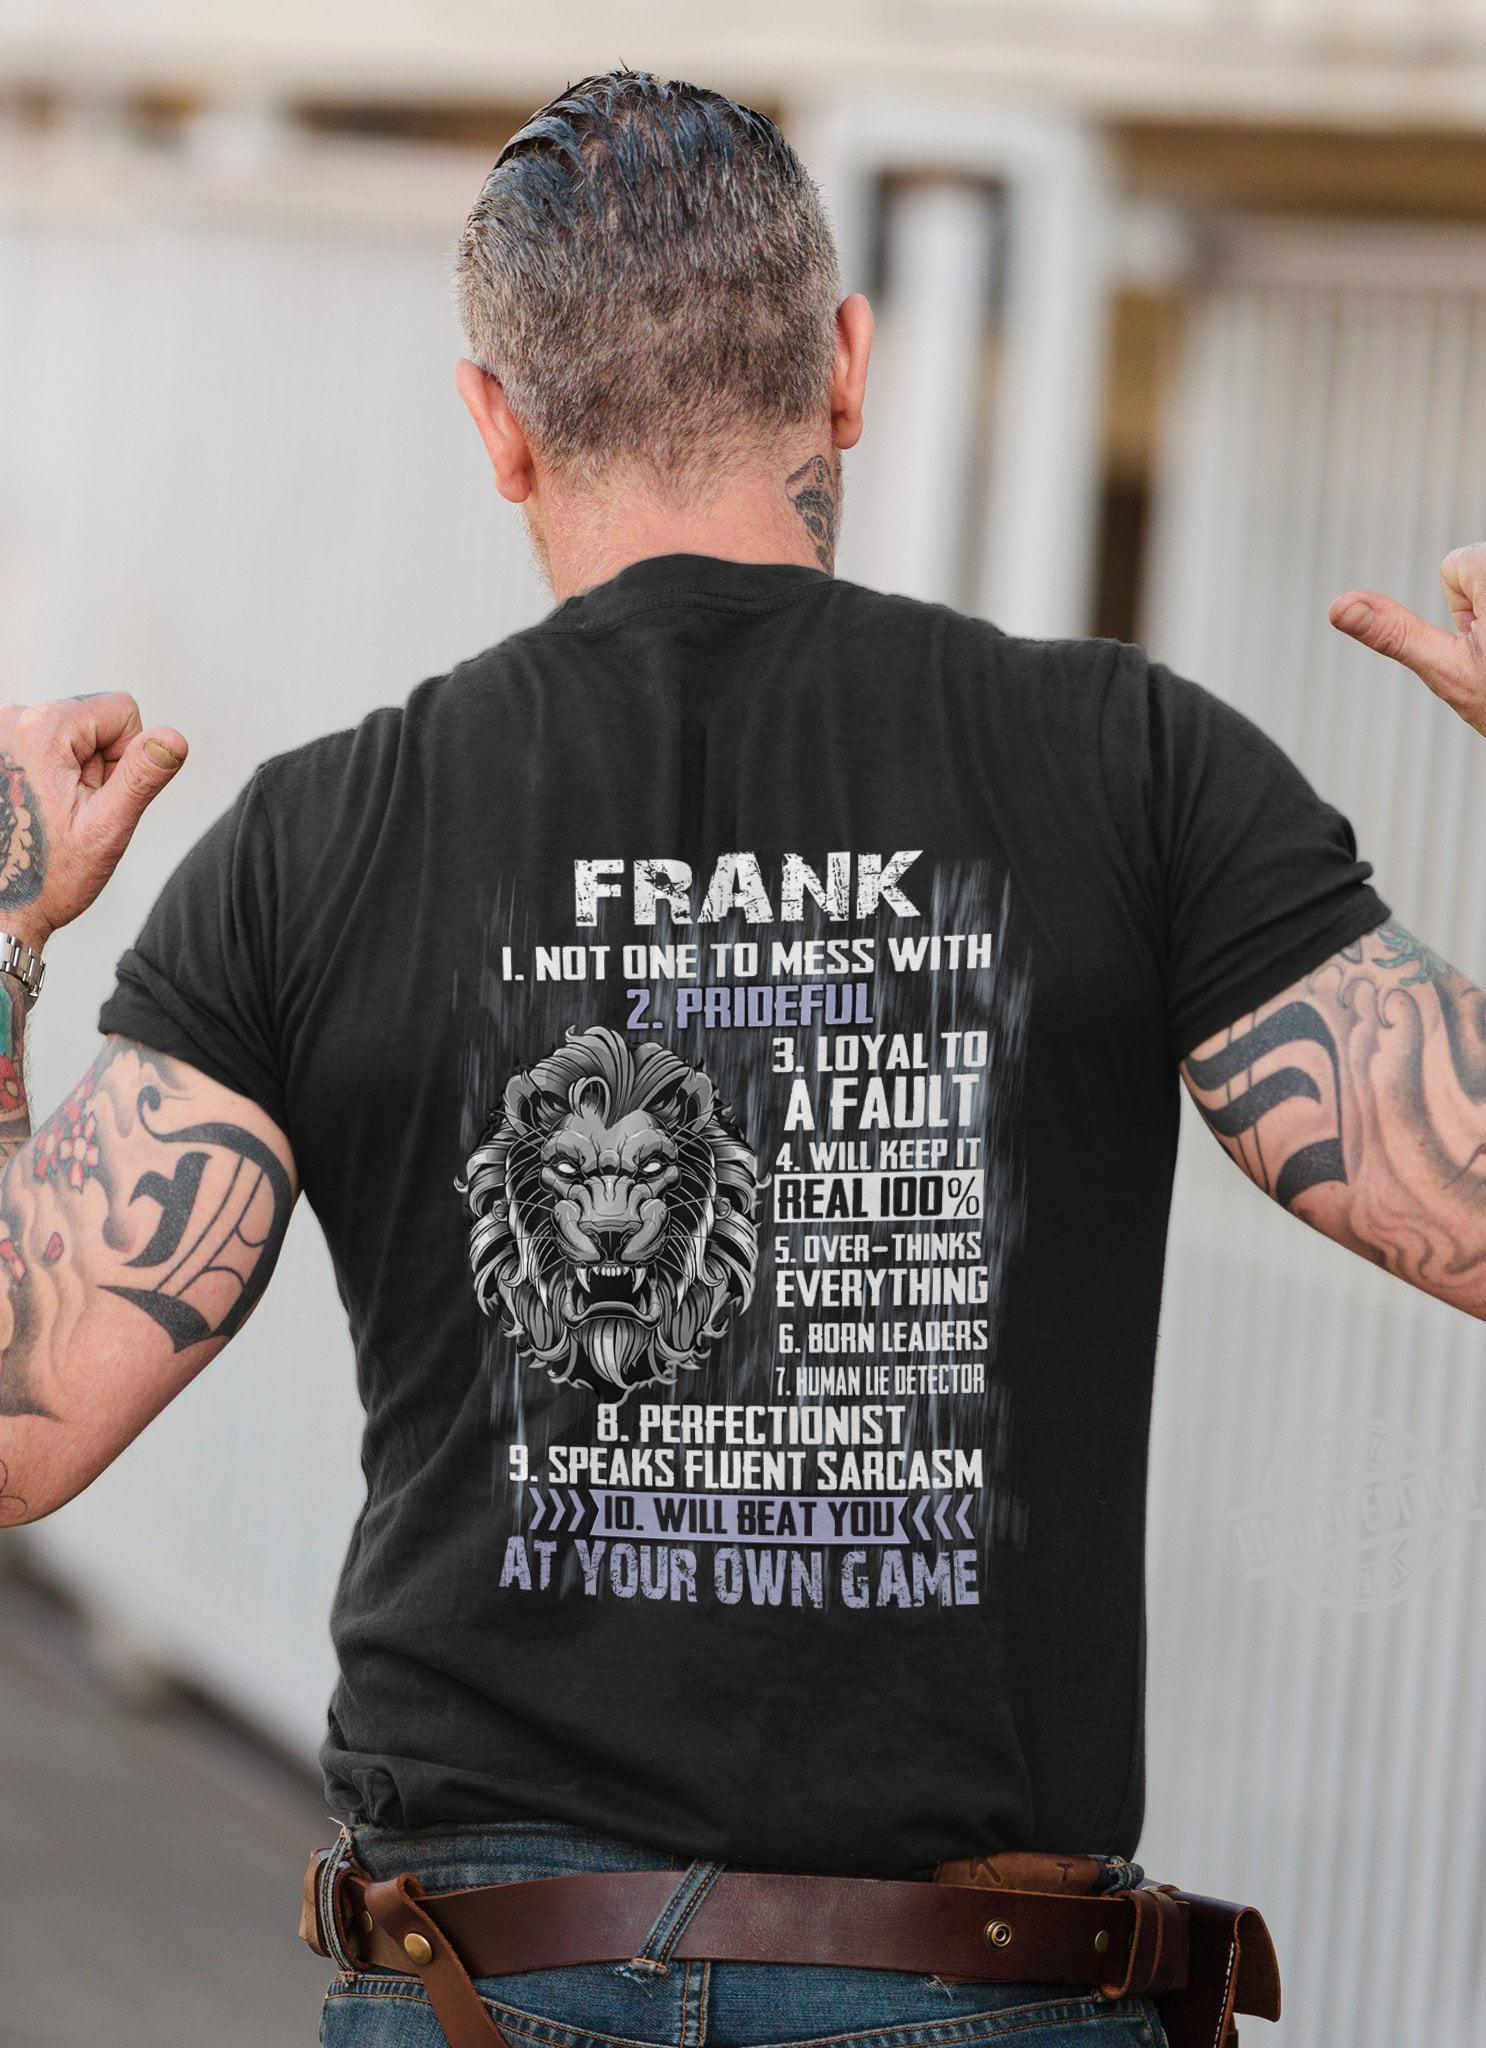 Frank Not One To Mess With Prideful Loyal To A Fault Will Keep It Real 100% Shirt